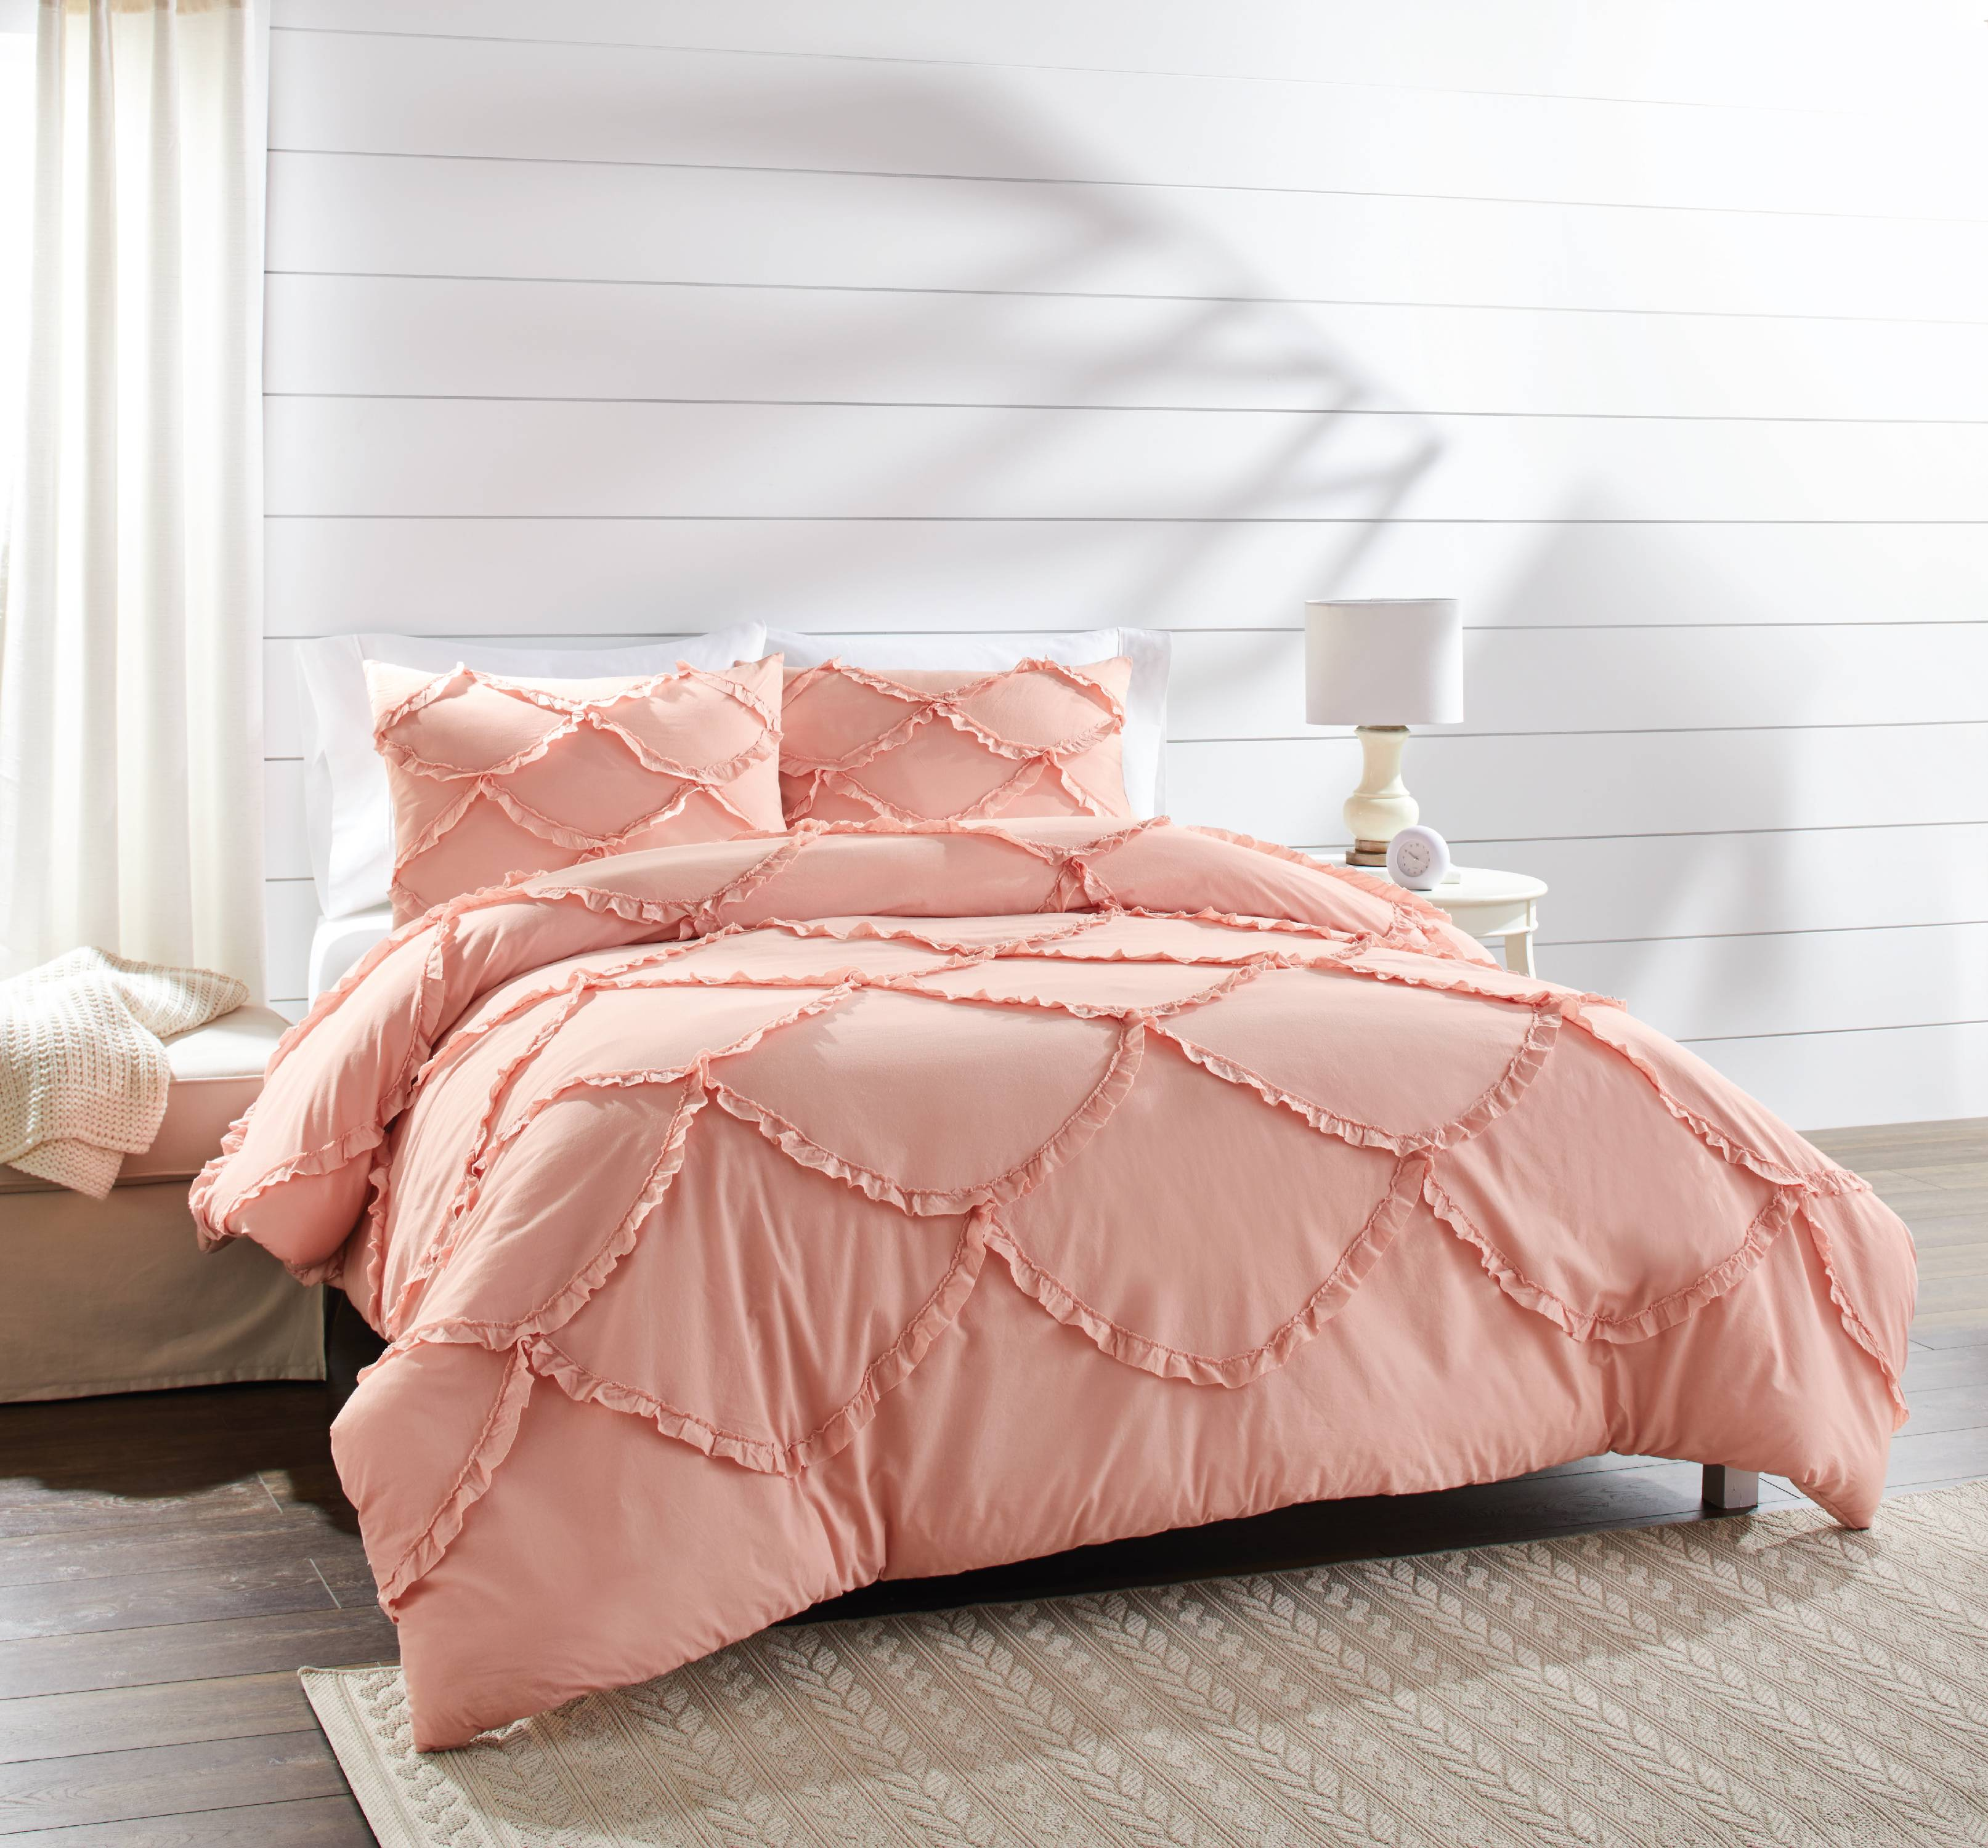 Better Homes And Gardens 3 Piece Blush Comforter Set by Better Homes & Gardens